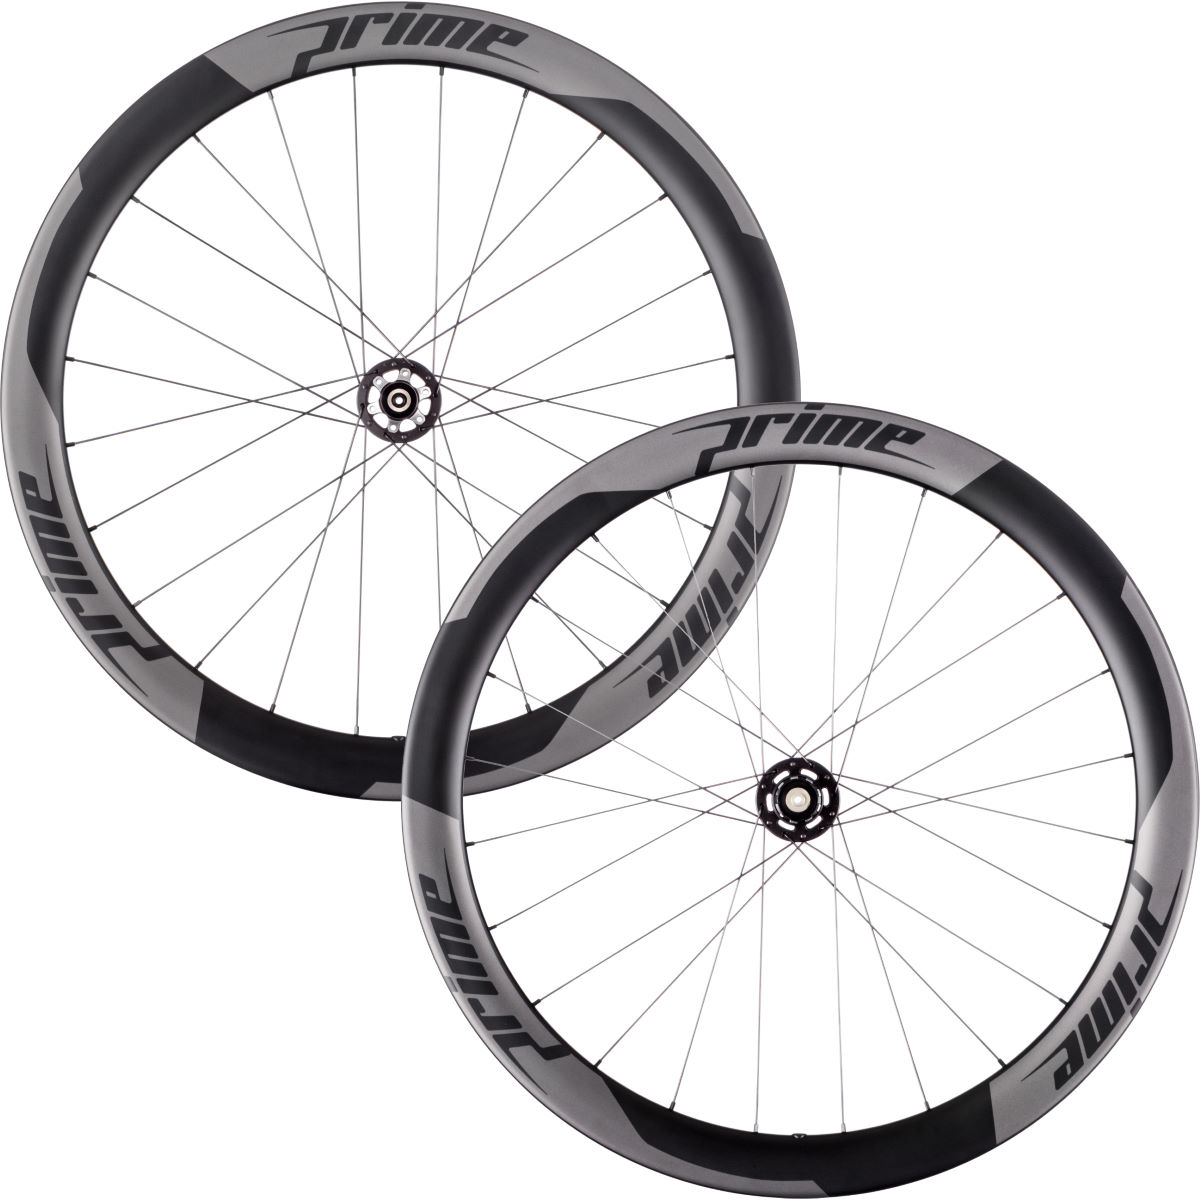 Prime RR-50 Carbon Clincher Disc Road Wheelset - 700c Shimano/SRAM Black Decal Roues performance